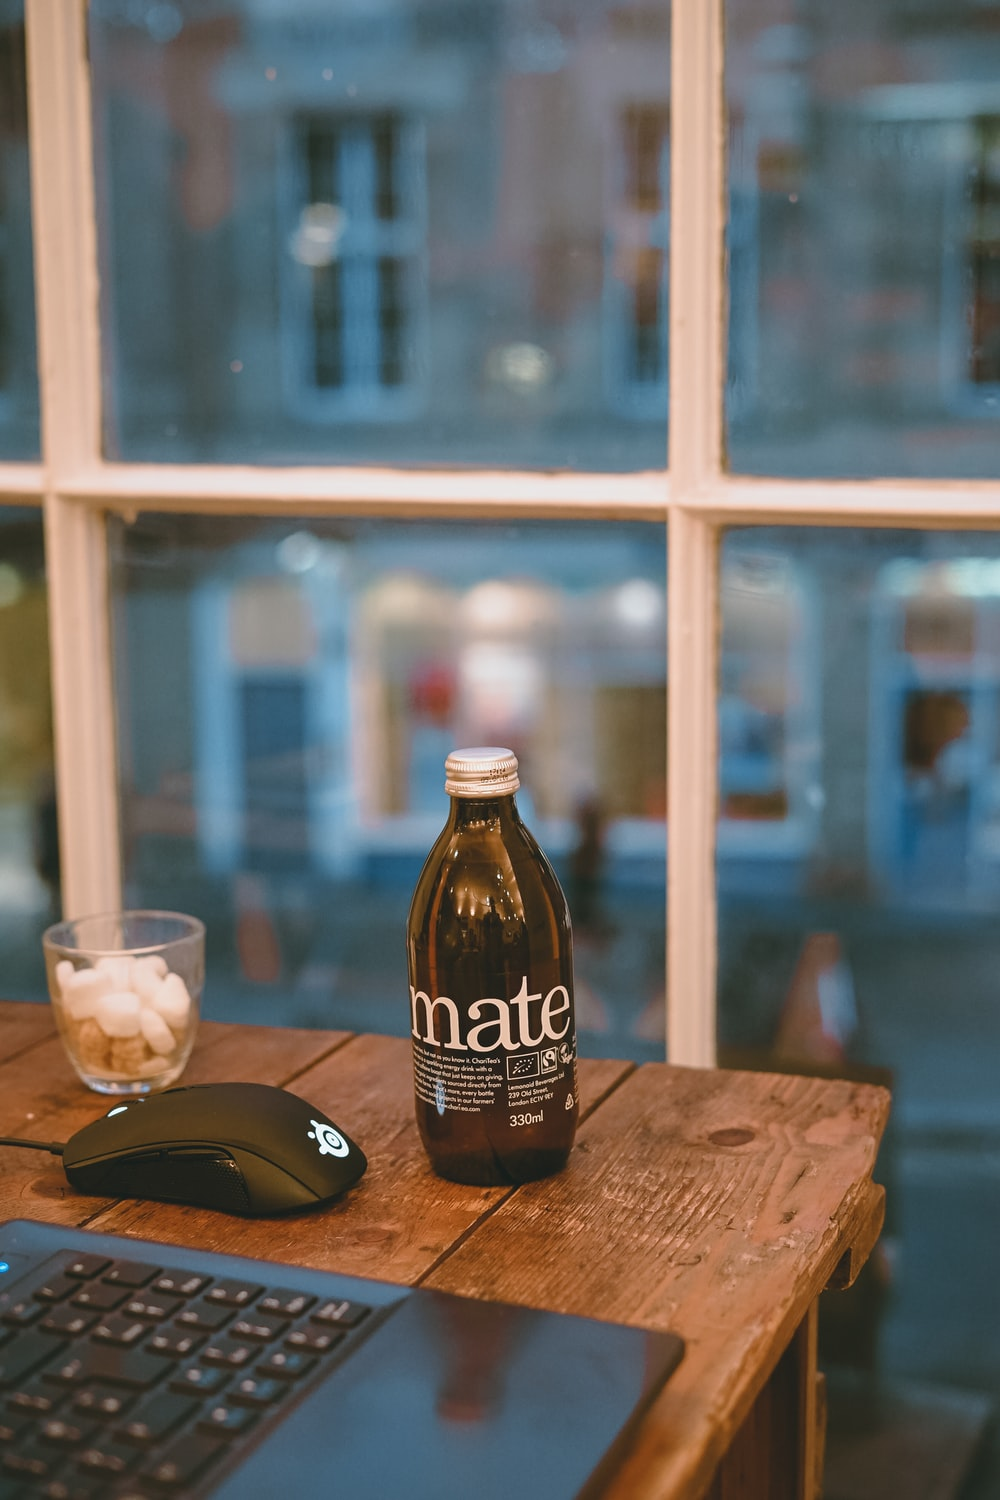 brown glass bottle near drinking glass and laptop on brown wooden table